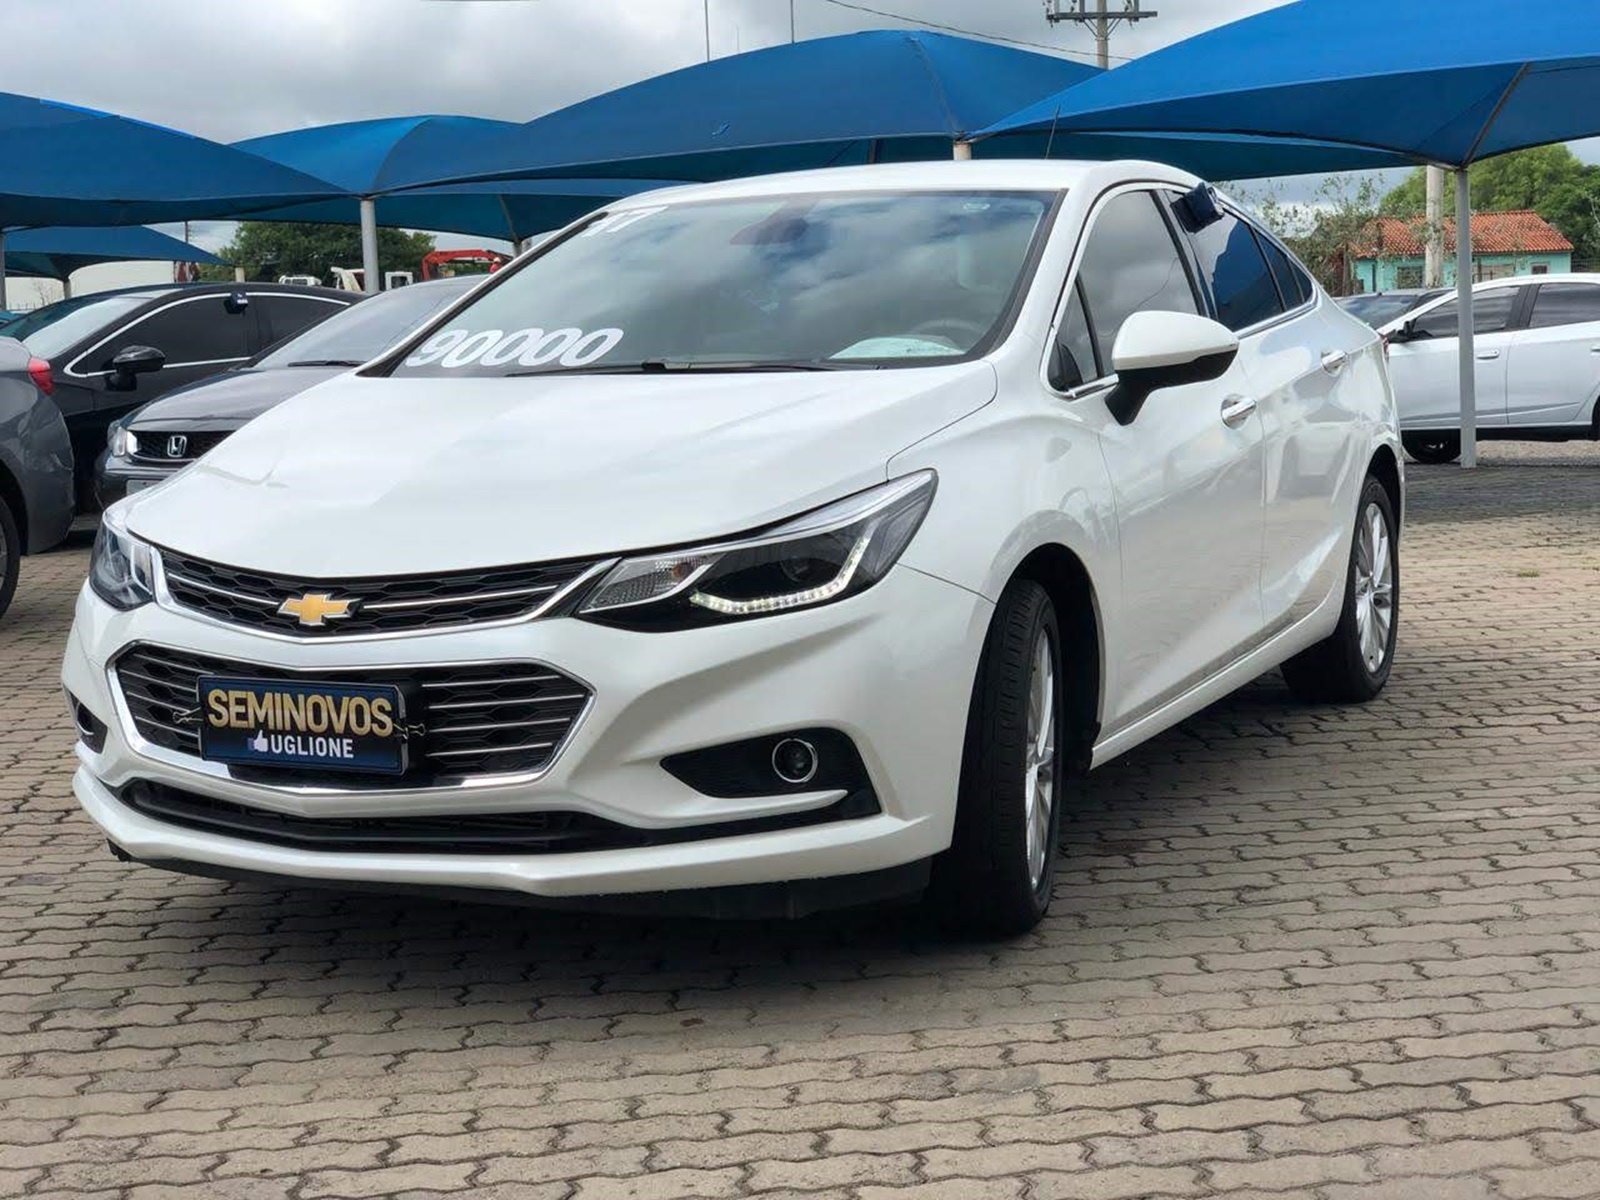 CHEVROLET CRUZE LTZ TURBO . 1.4 2017